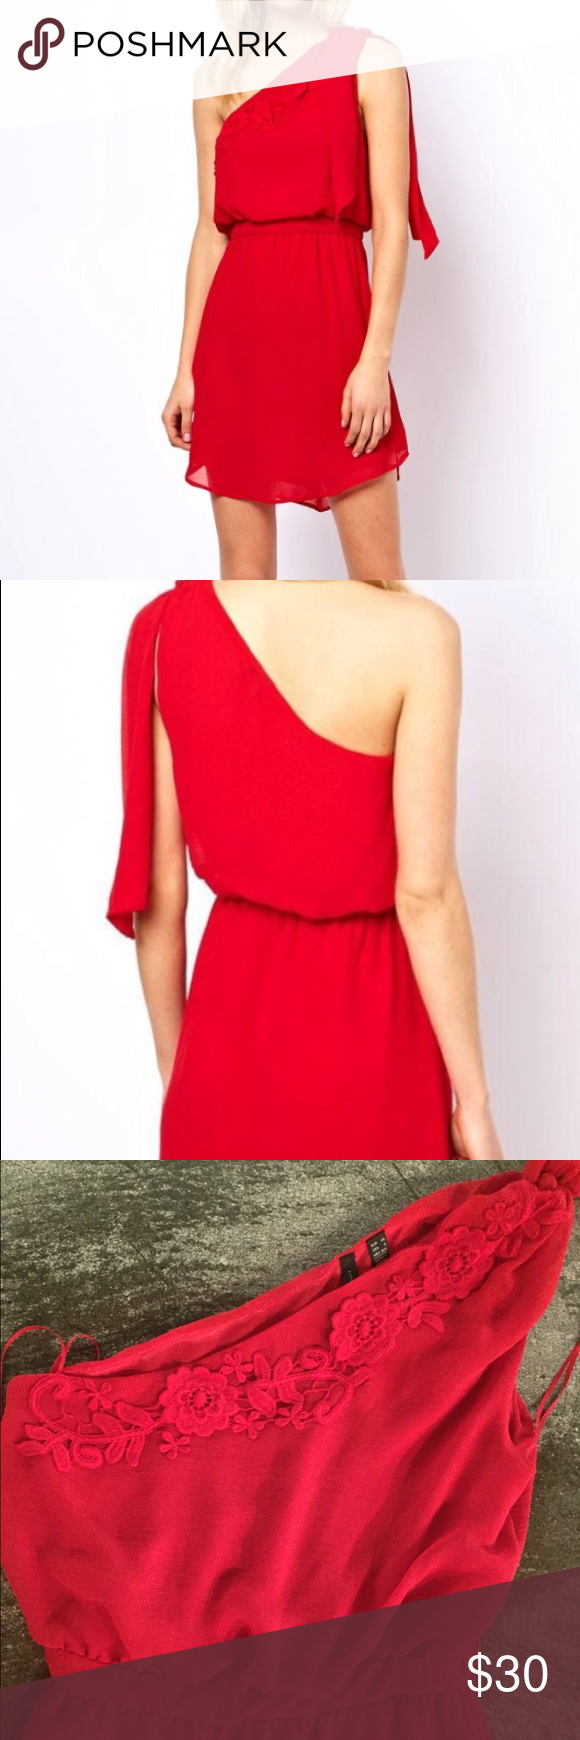 Mango red dress with details in crochet Really nice for the summer wore it once, has a little imperfection under the right arm as is shown in the pics. Good condition. Mango Dresses